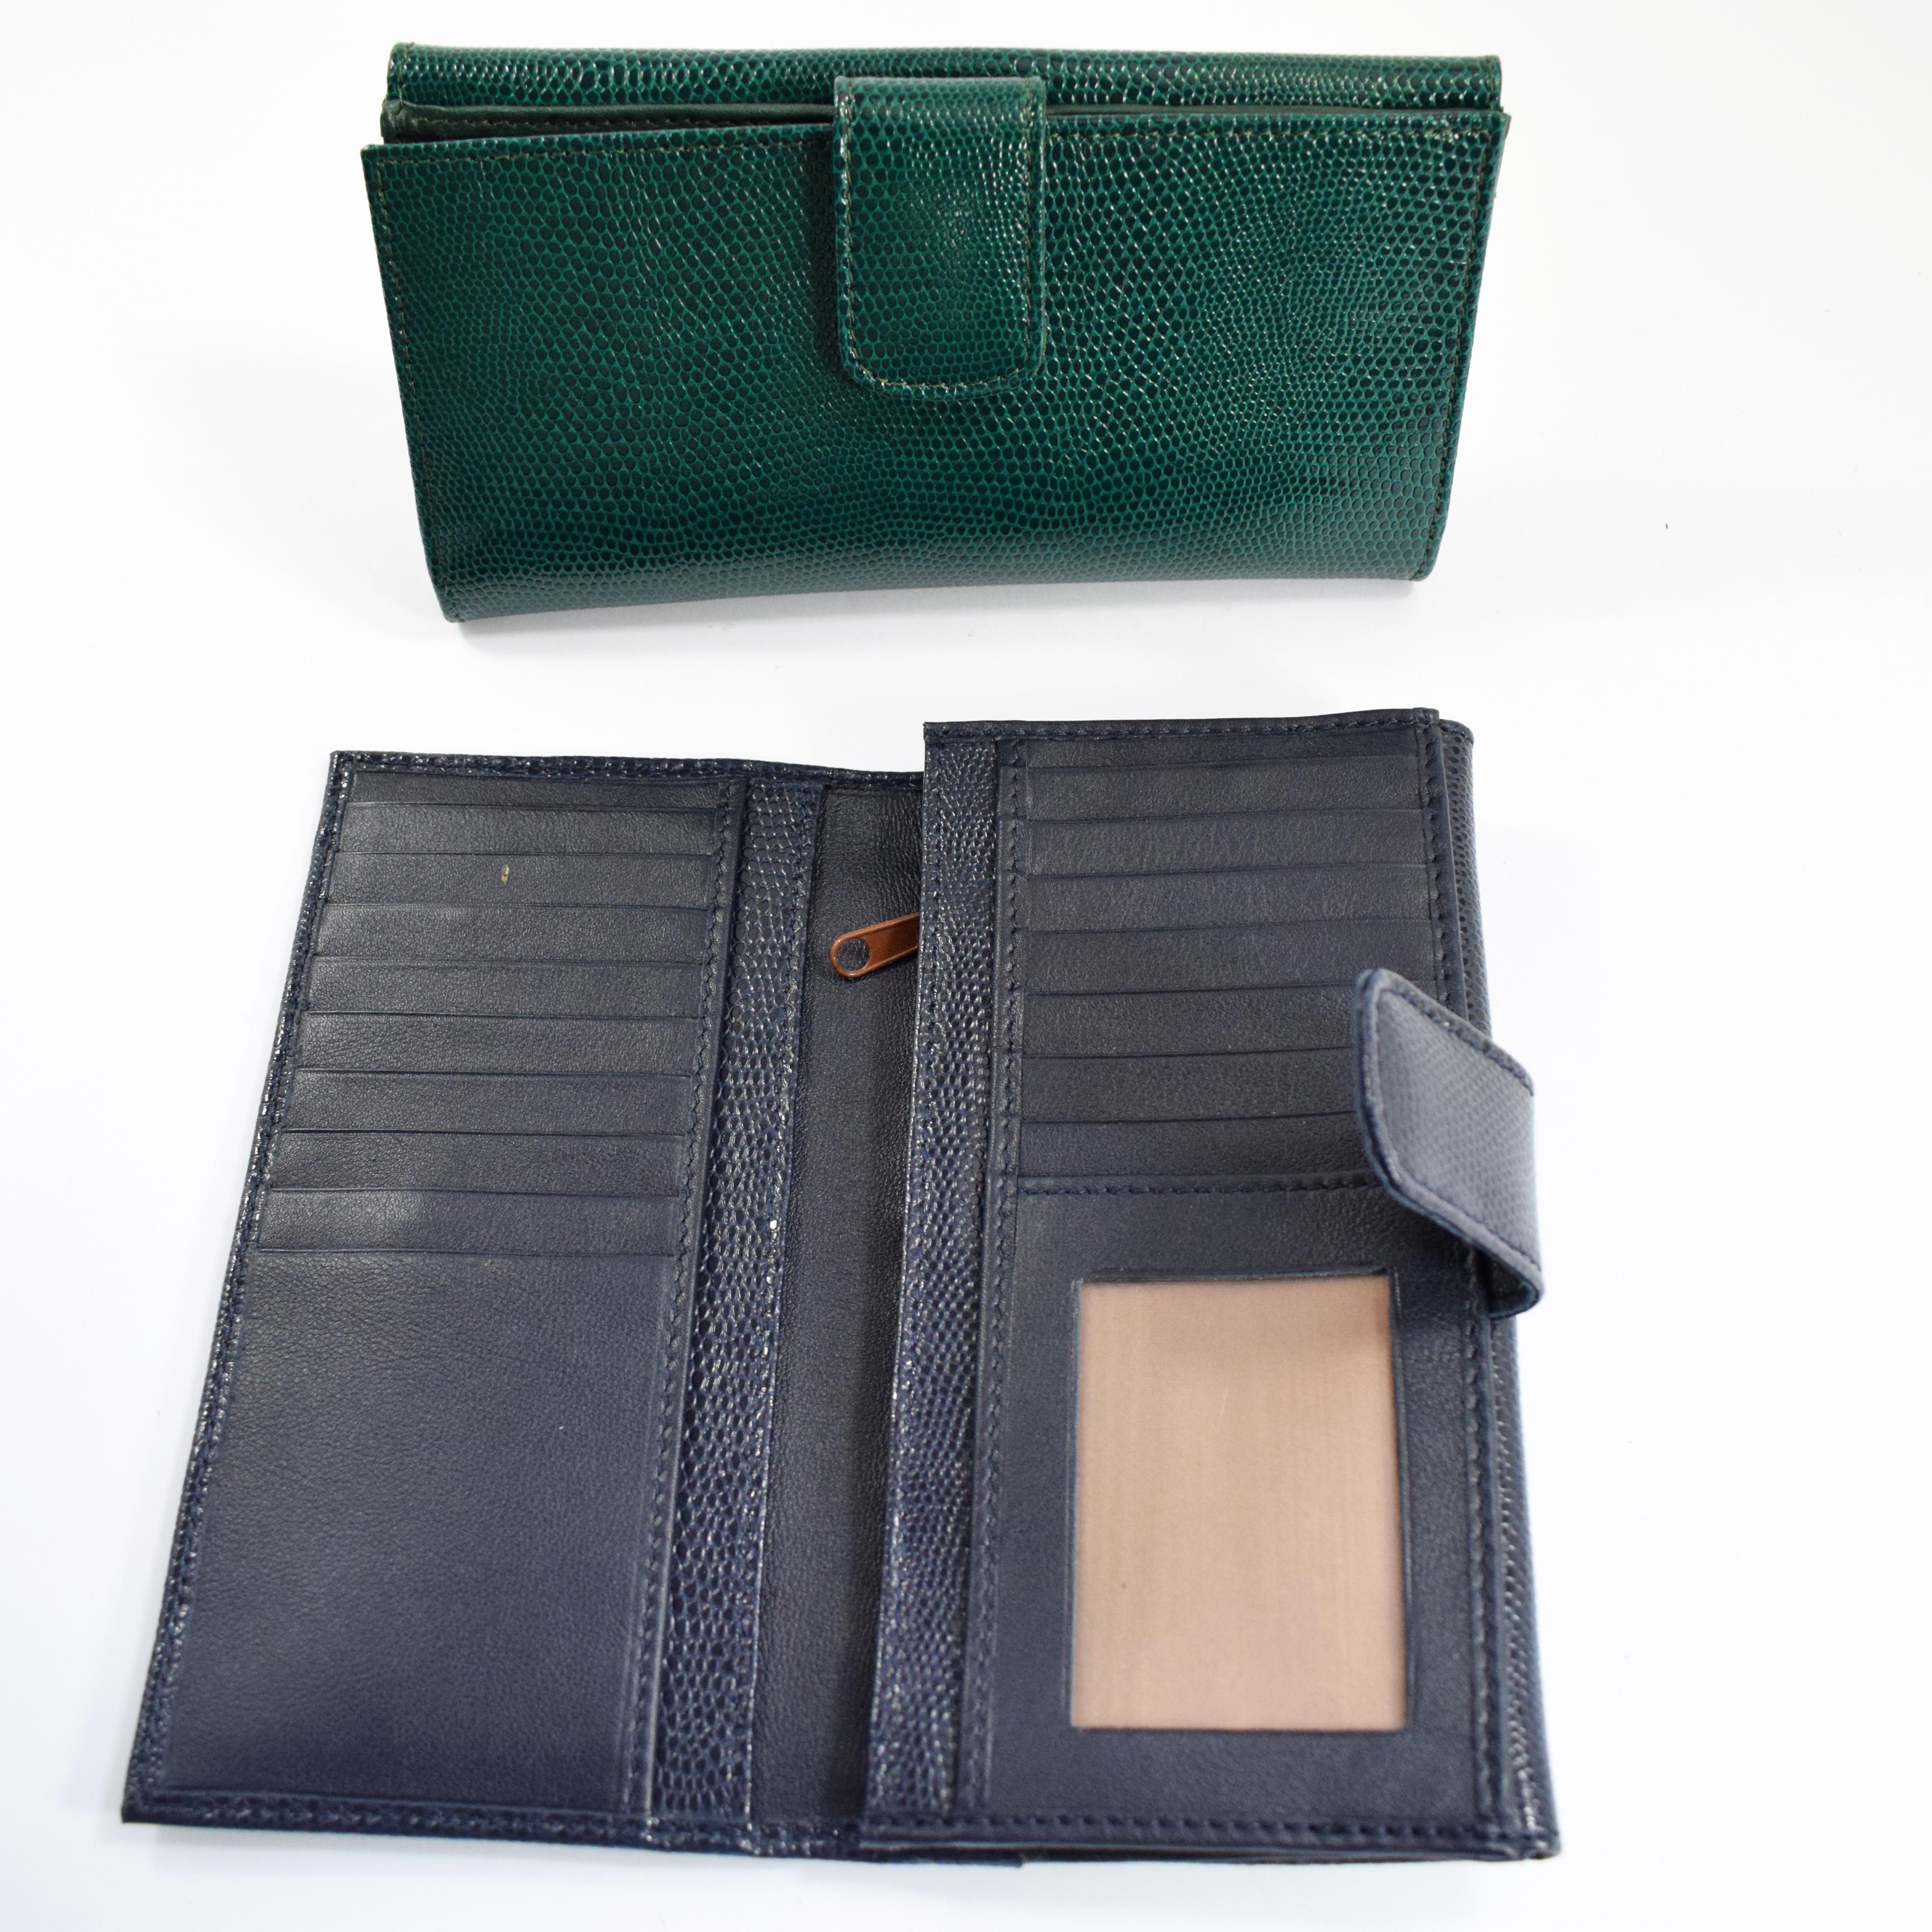 1632 n Women's wallet with flap by Bottega Fiorentina